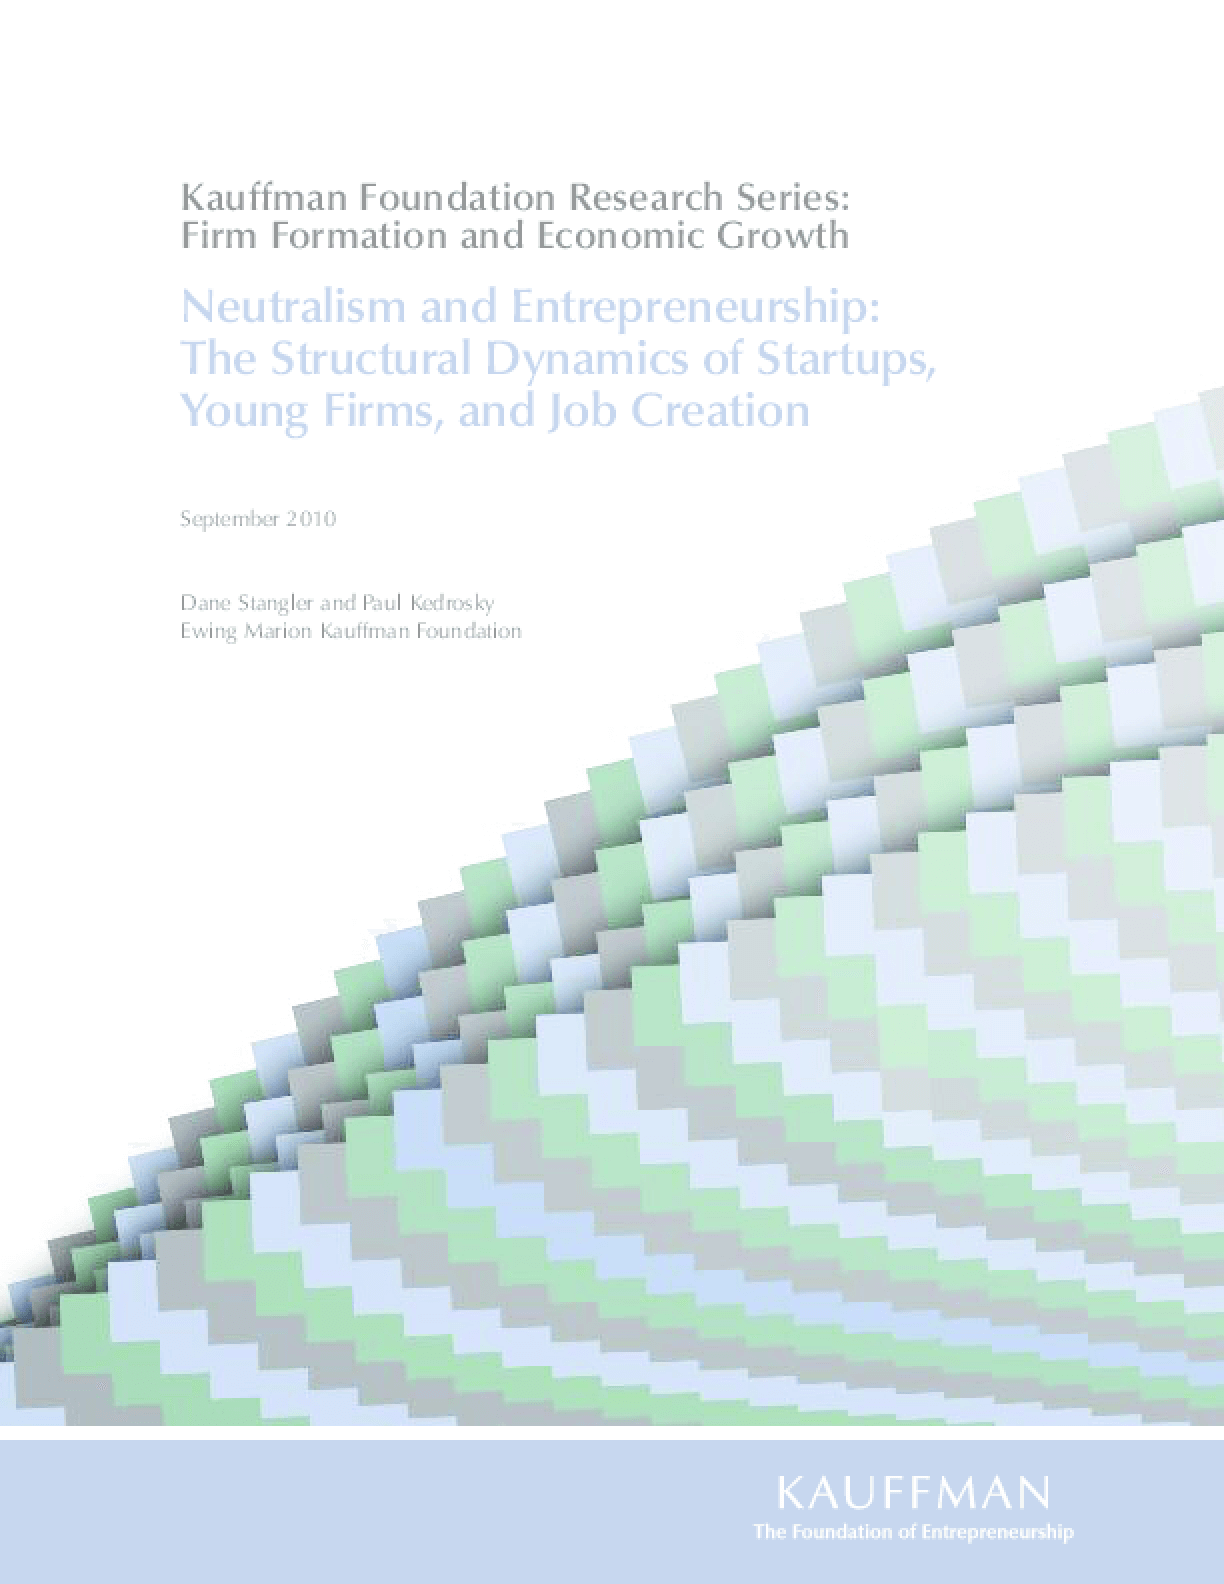 Neutralism and Entrepreneurship: The Structural Dynamics of Startups, Young Firms and Job Creation